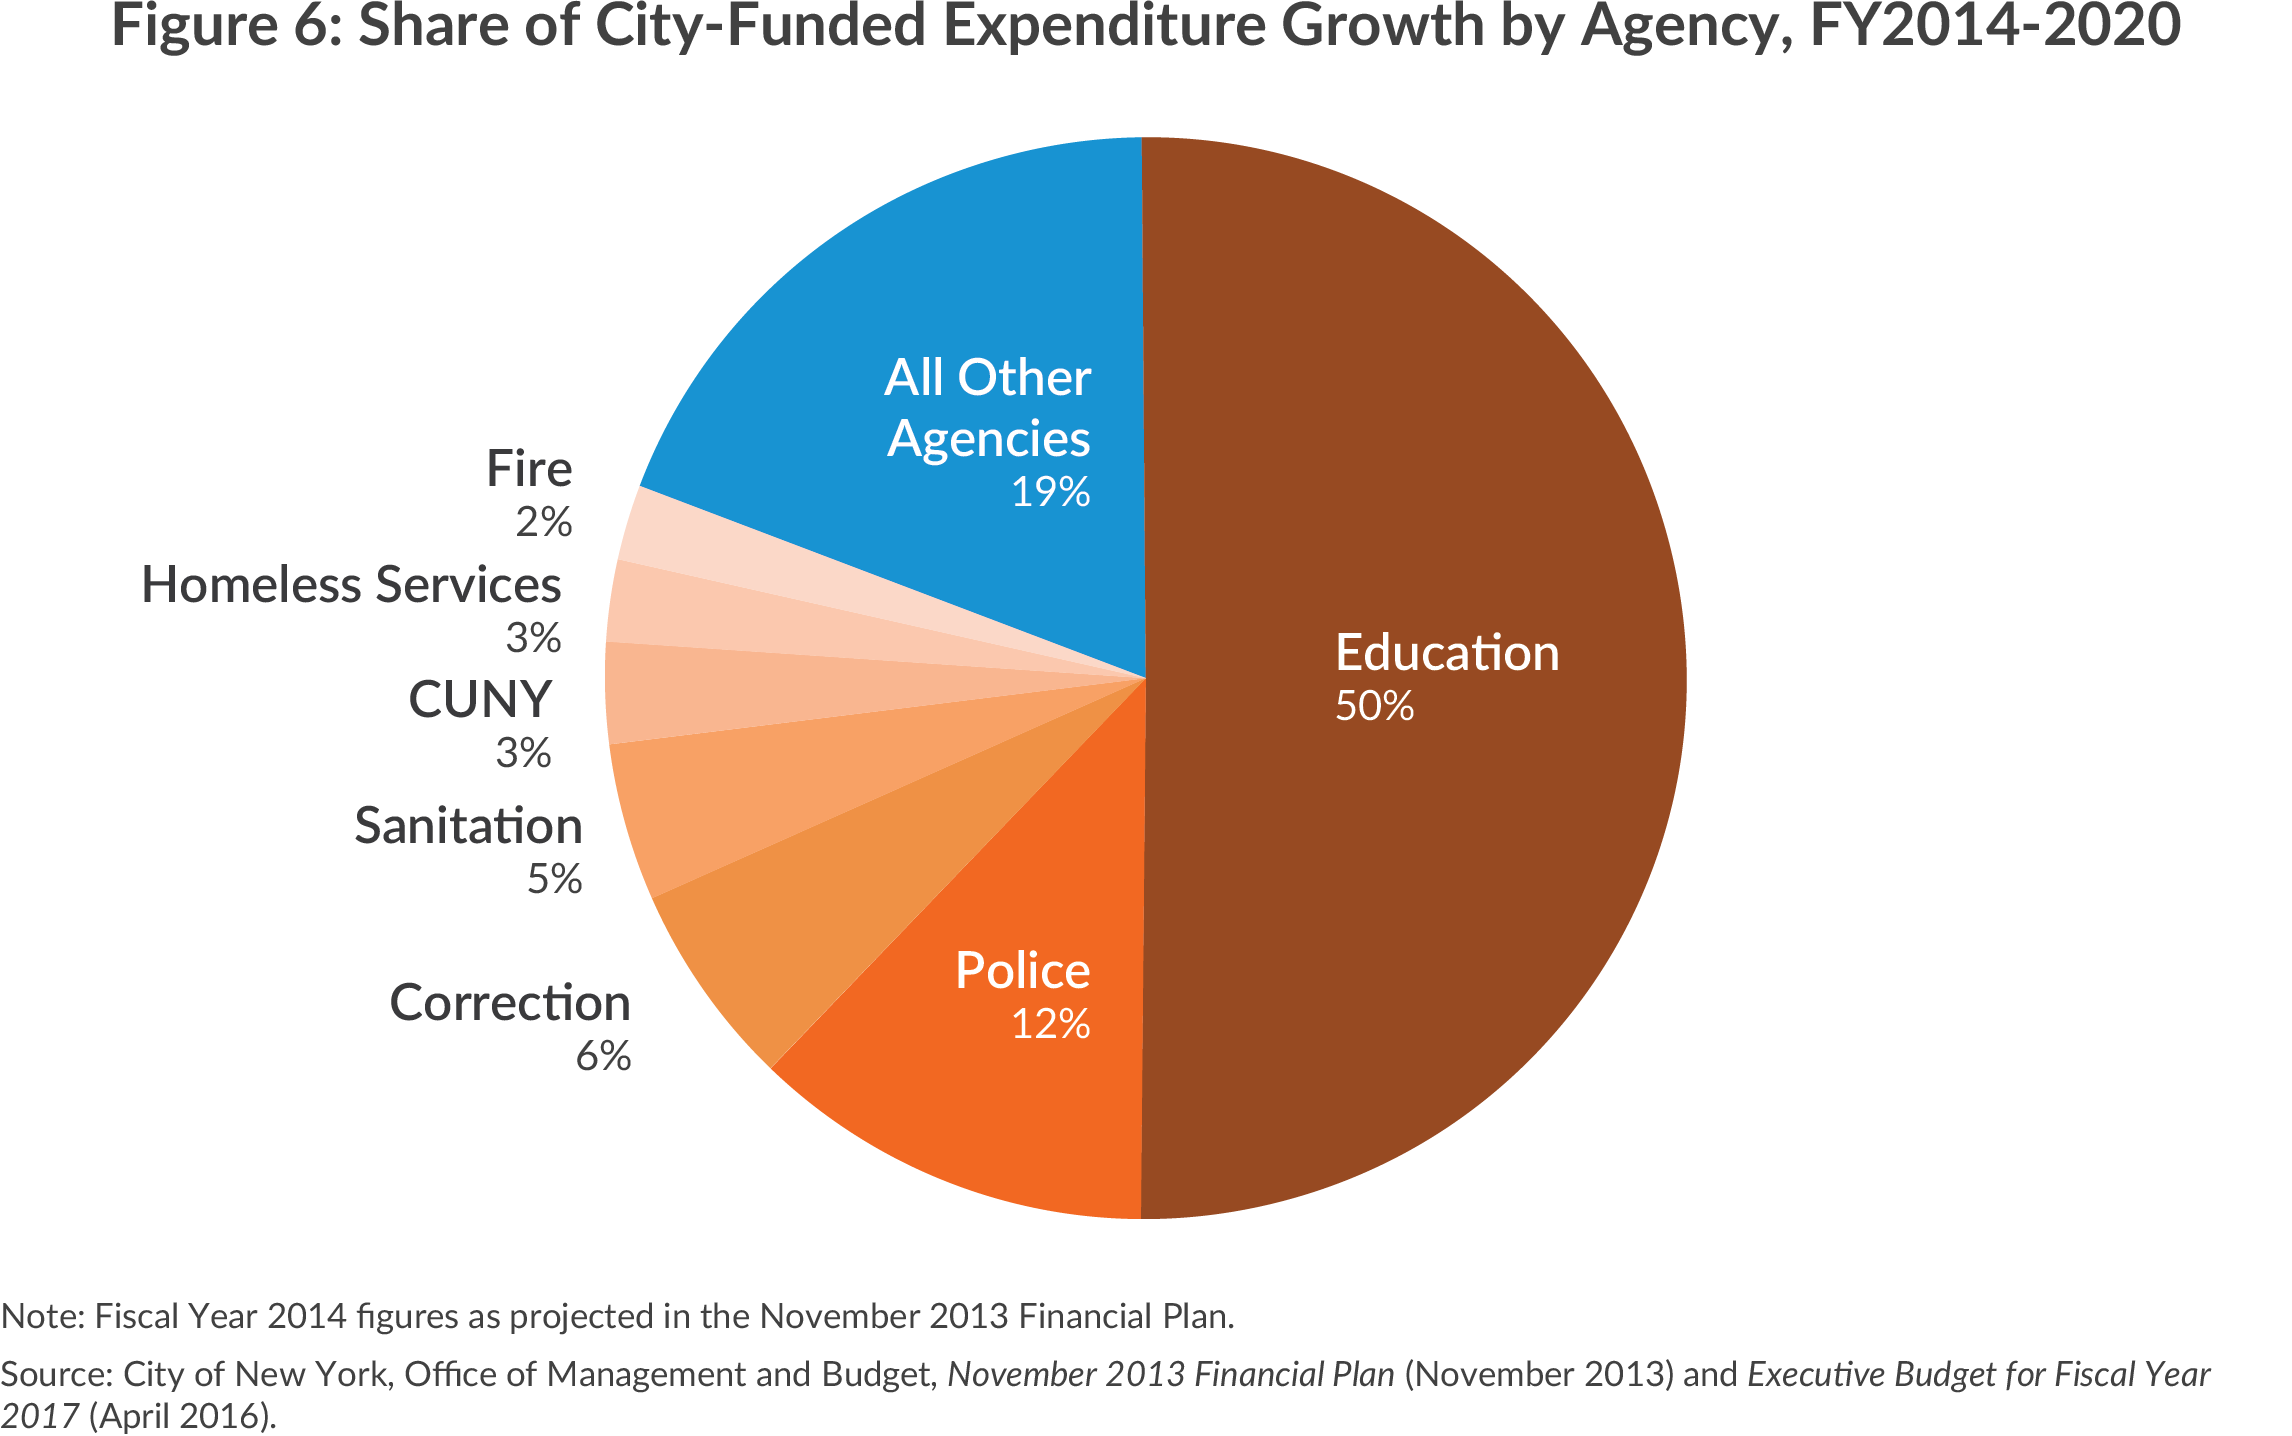 Share of city-funded expenditure growth by agency, 2014-2020